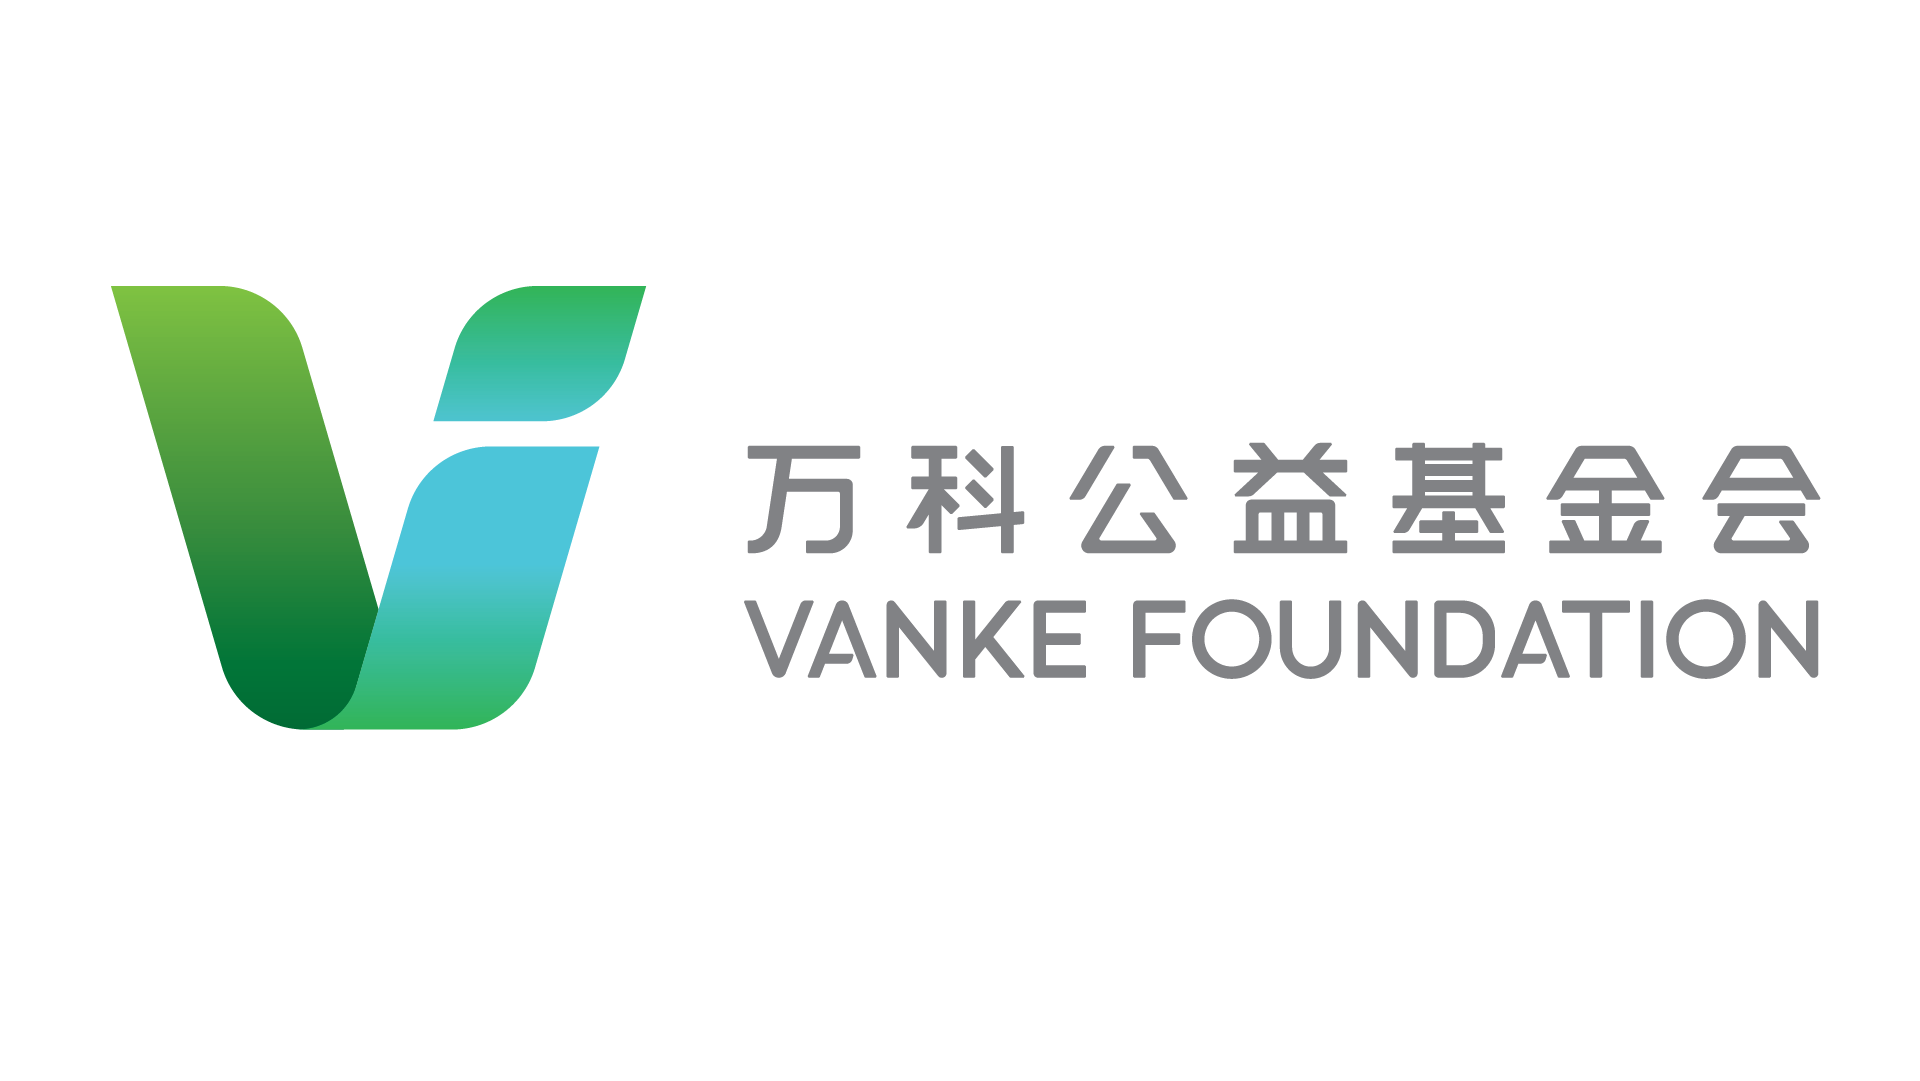 Vanke Foundation logo